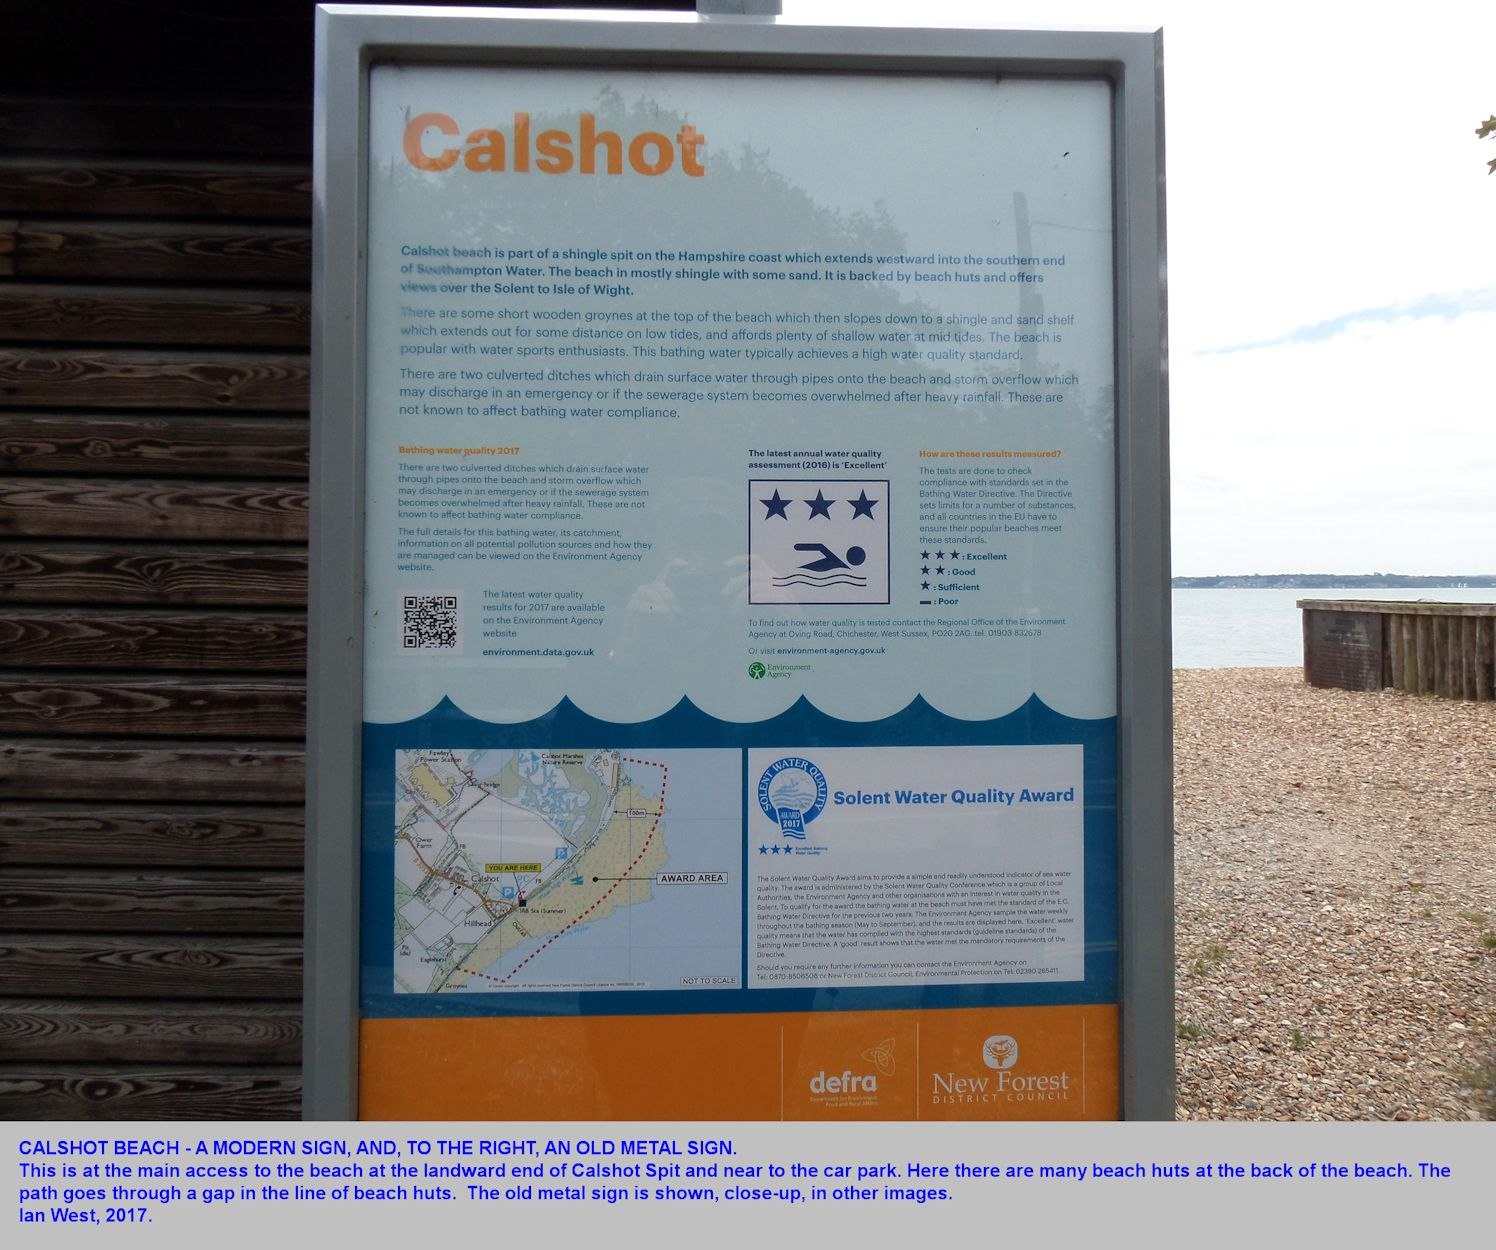 An information sign at the access to the beach at the southwestern end of Calshot Spit, Hampshire, in 2017